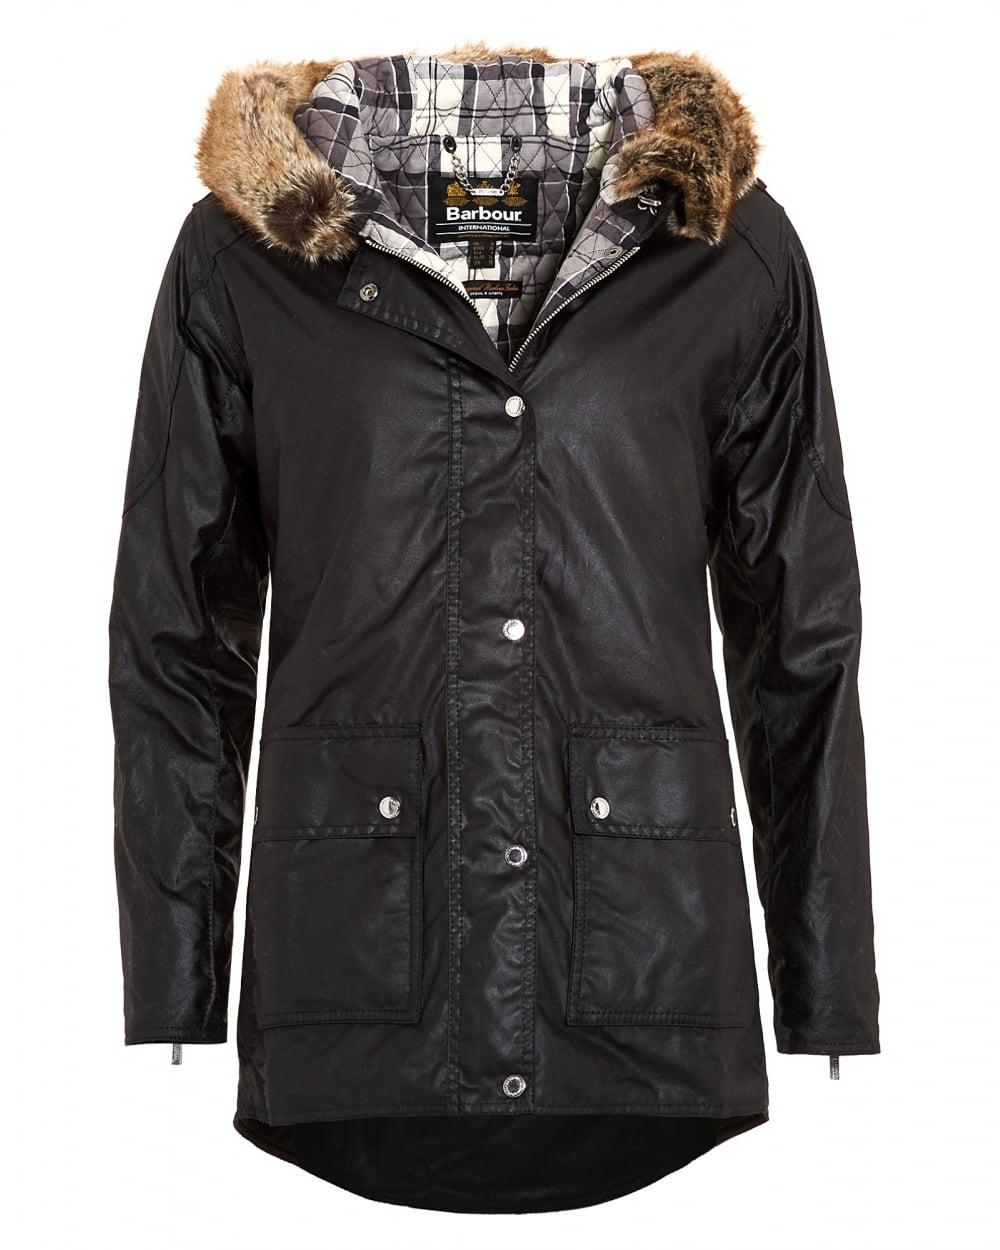 Barbour International Womens Turini Black Waxed Jacket, Fur Trim Parka